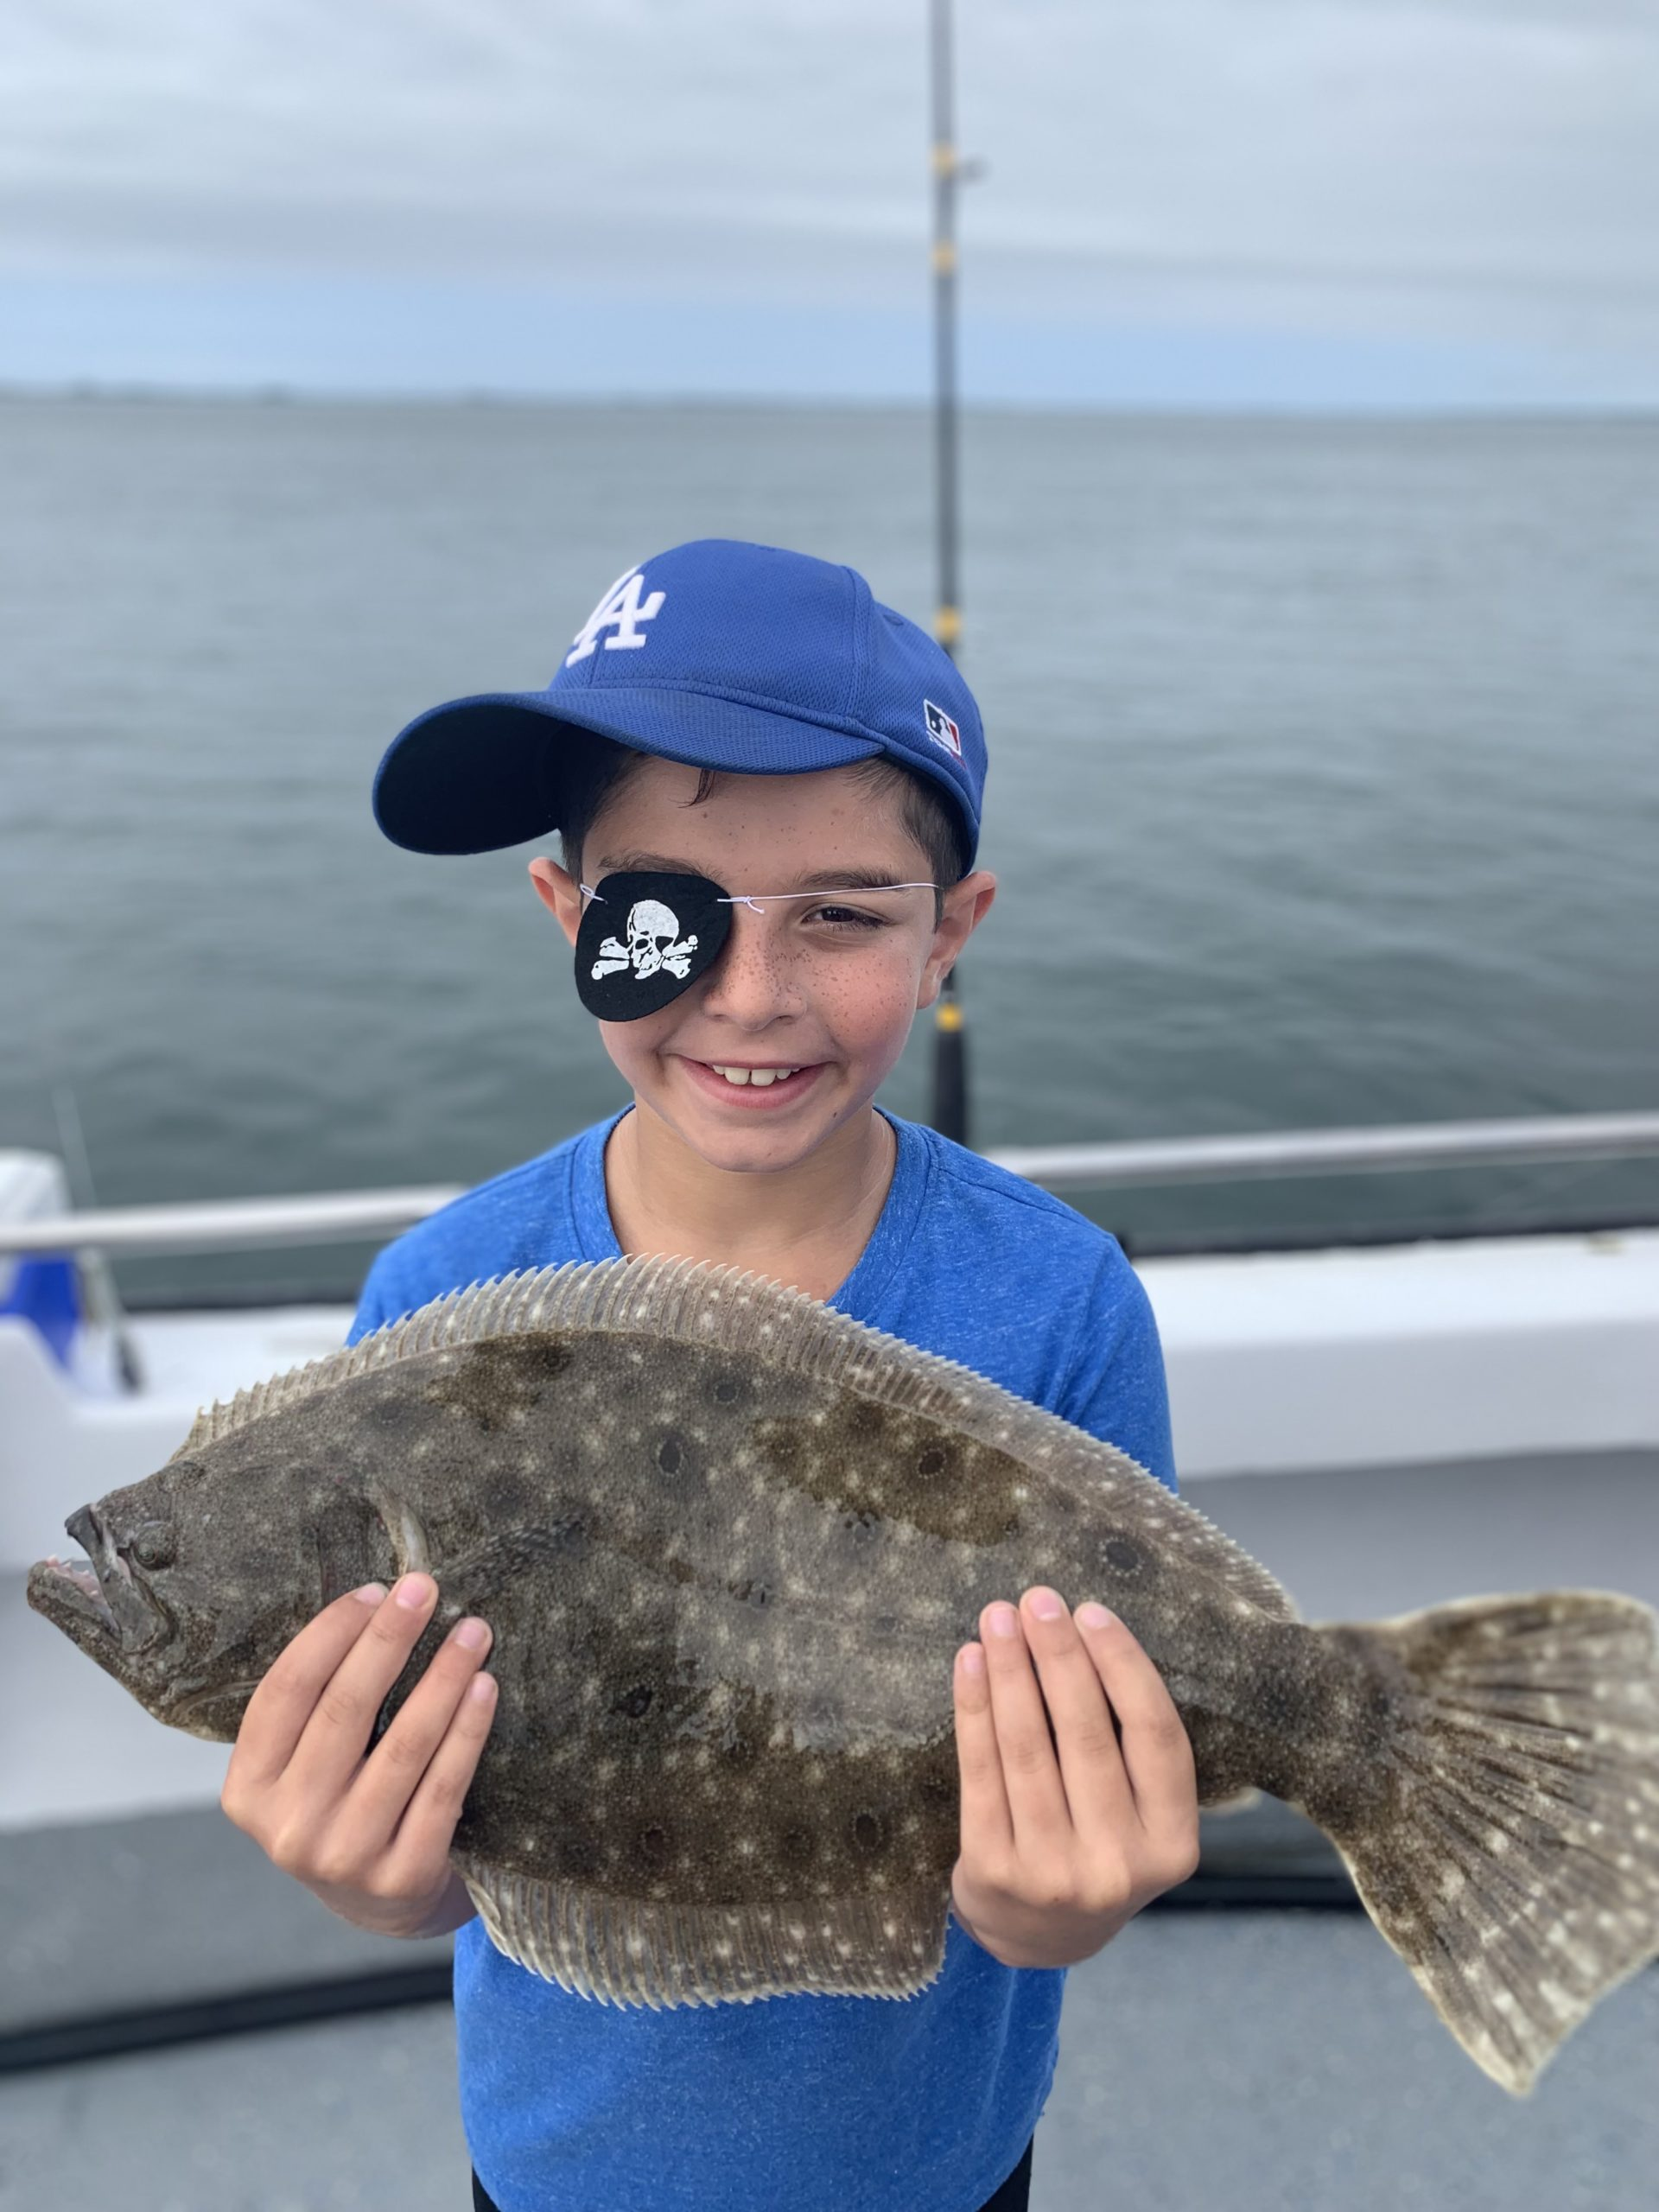 Tommy Savastano, fluke pirate extraordinaire, with the plunder from a recent trip aboard the Shinnecock Star with his cousin Deena Lippman.